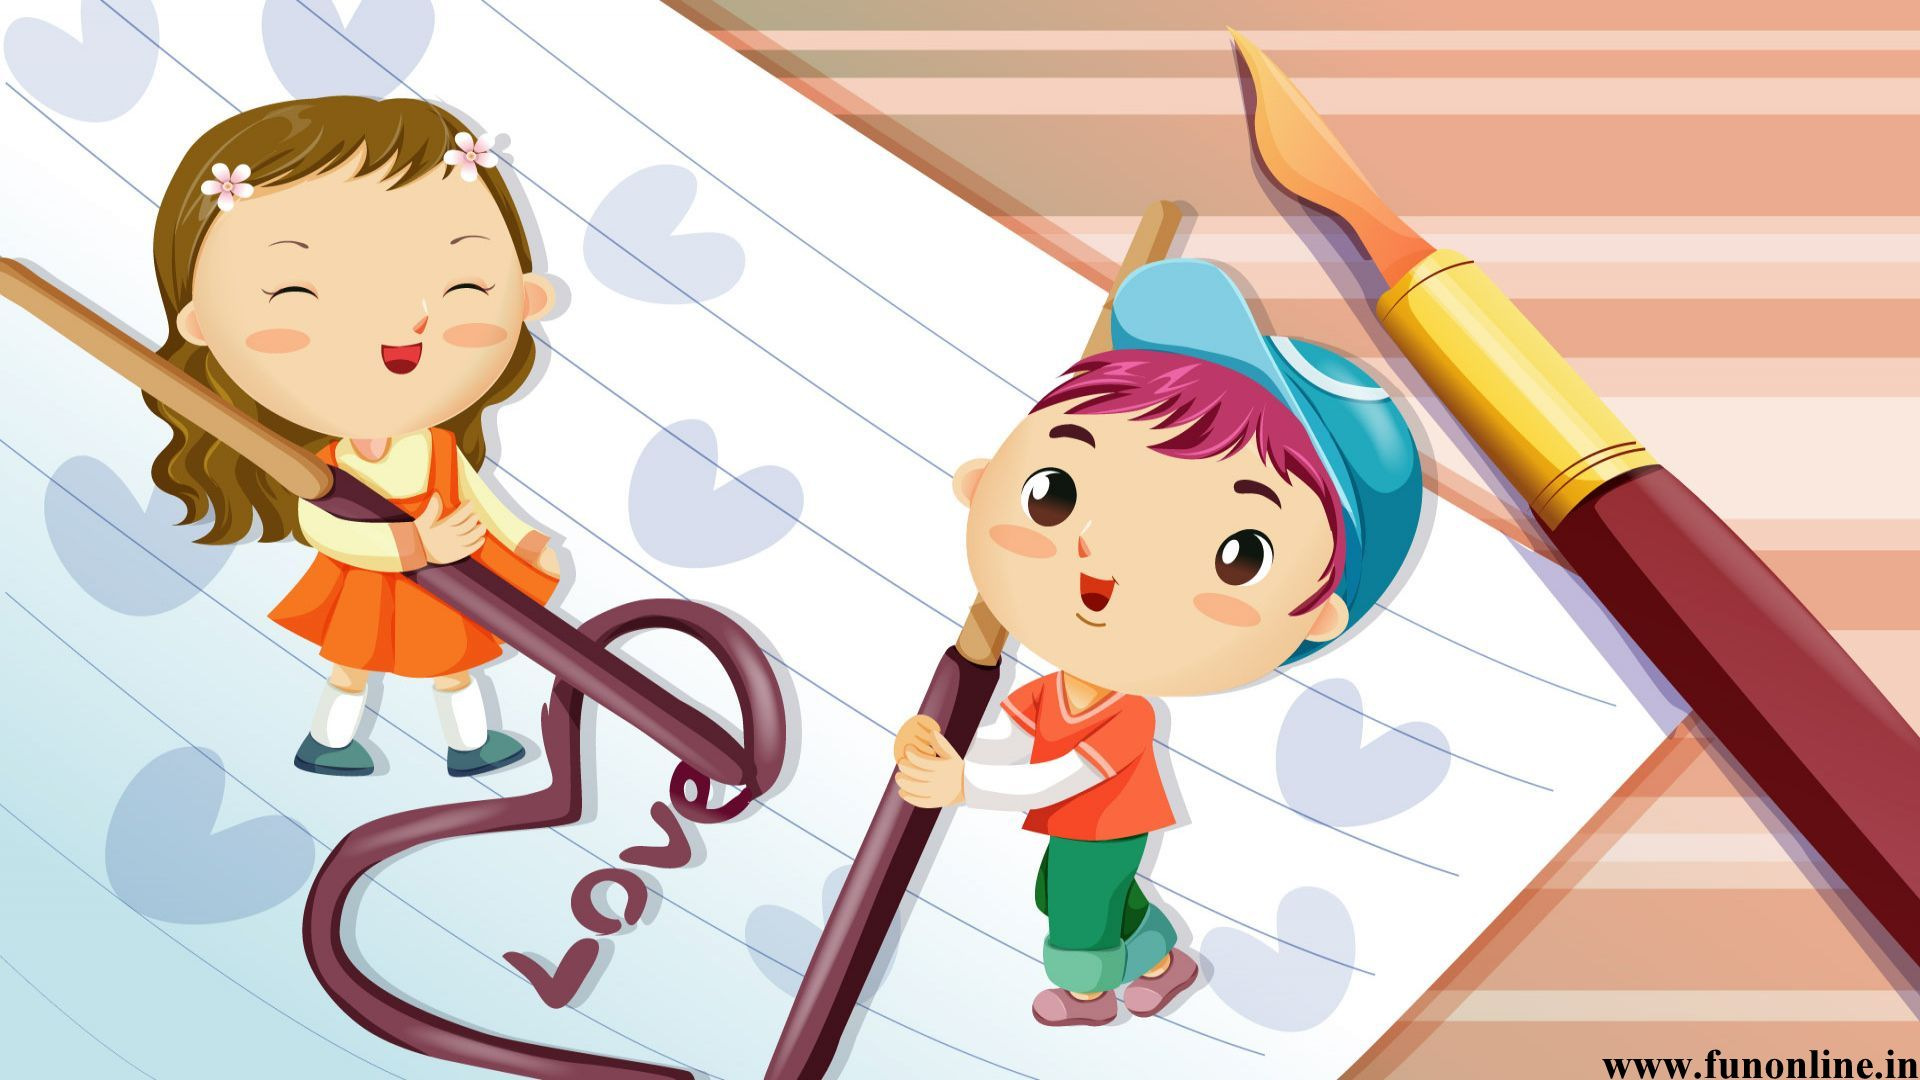 Cartoon Love Wallpapers Charming Cartoon Love HD Wallpapers For 1920x1080